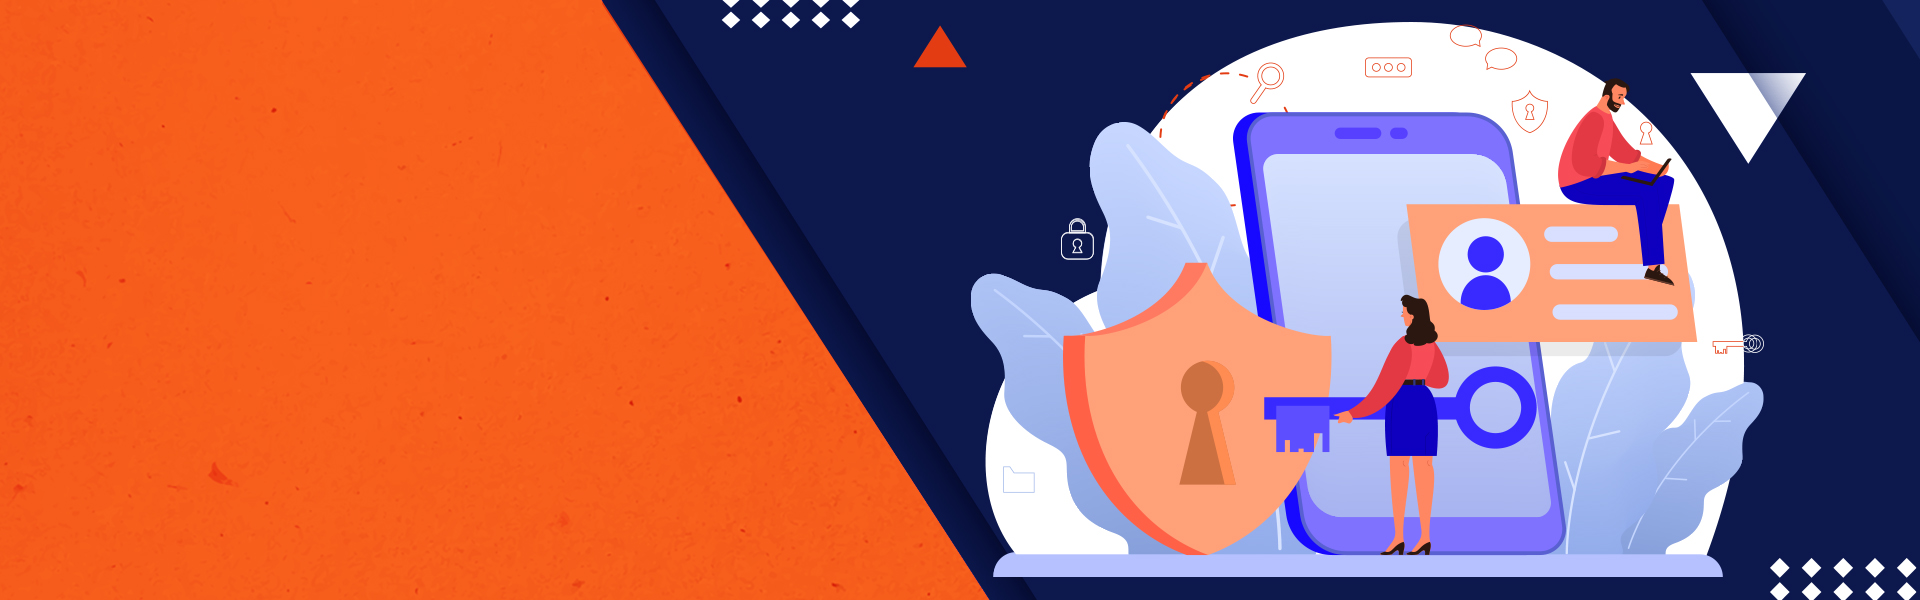 OWASP Top 10 The Ultimate Guide for App Security in 2021 _main-banner